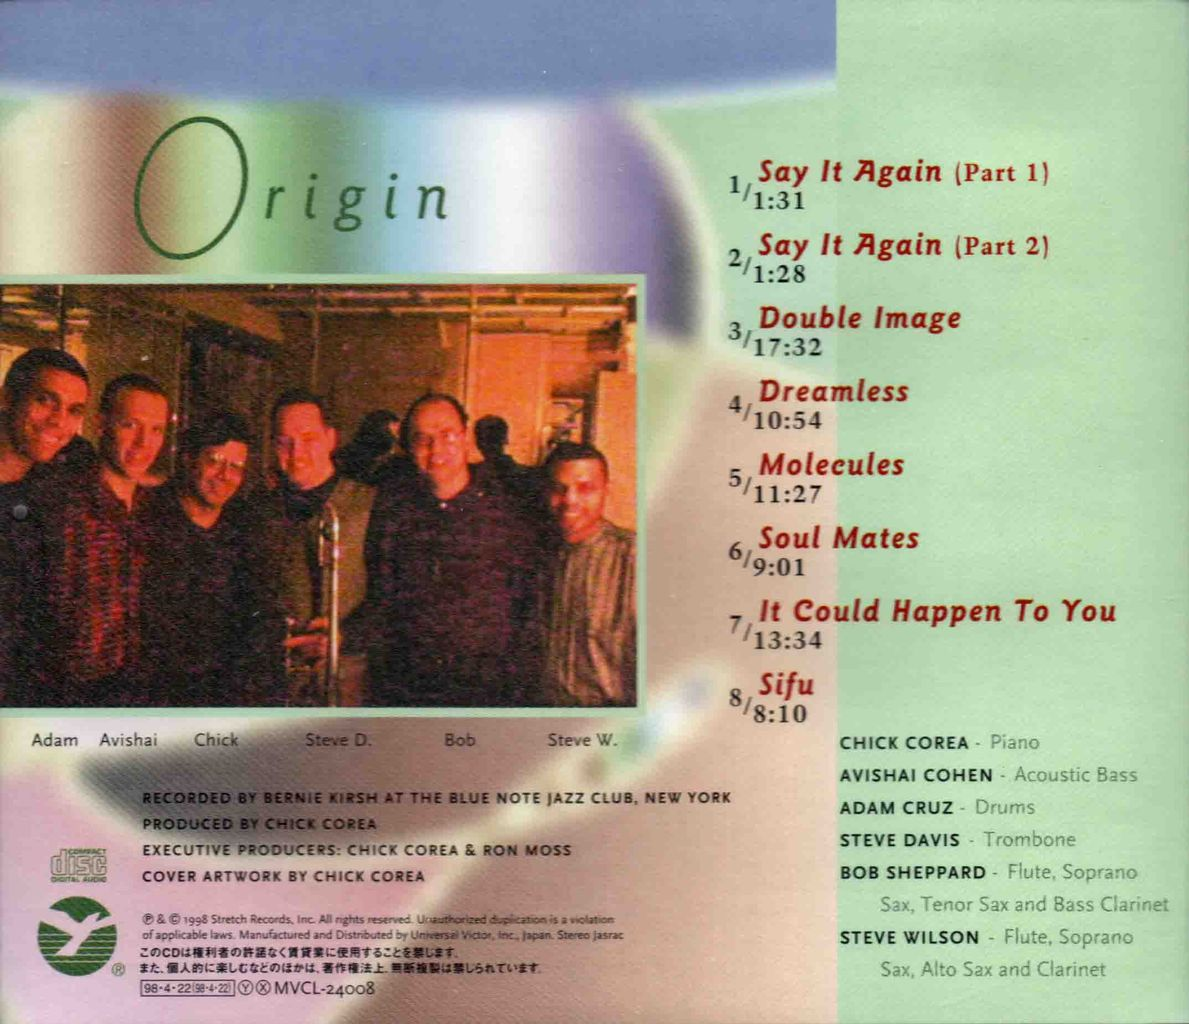 CHICK COREA AND ORIGIN-2